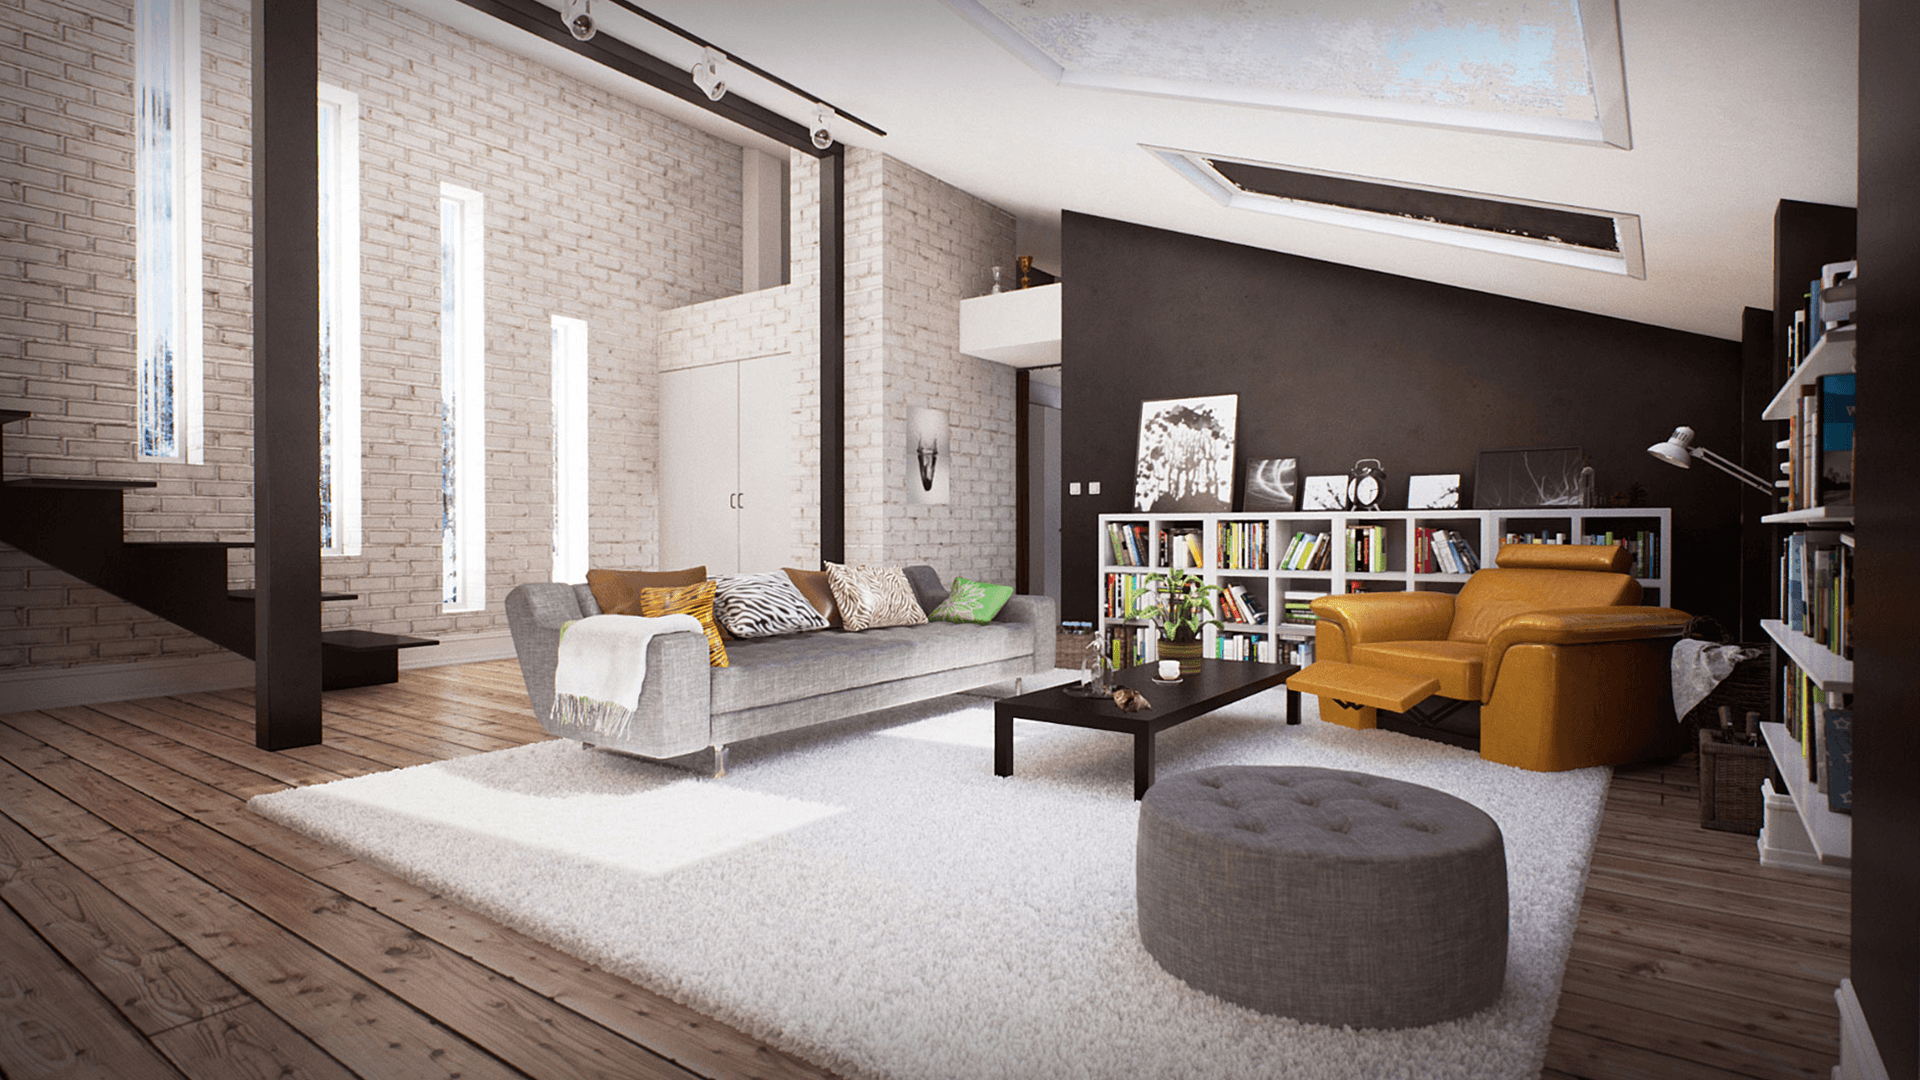 Charming Archinteriors Vol 2 Scene 1 By Evermotion In Architectural Visualization    UE4 Marketplace